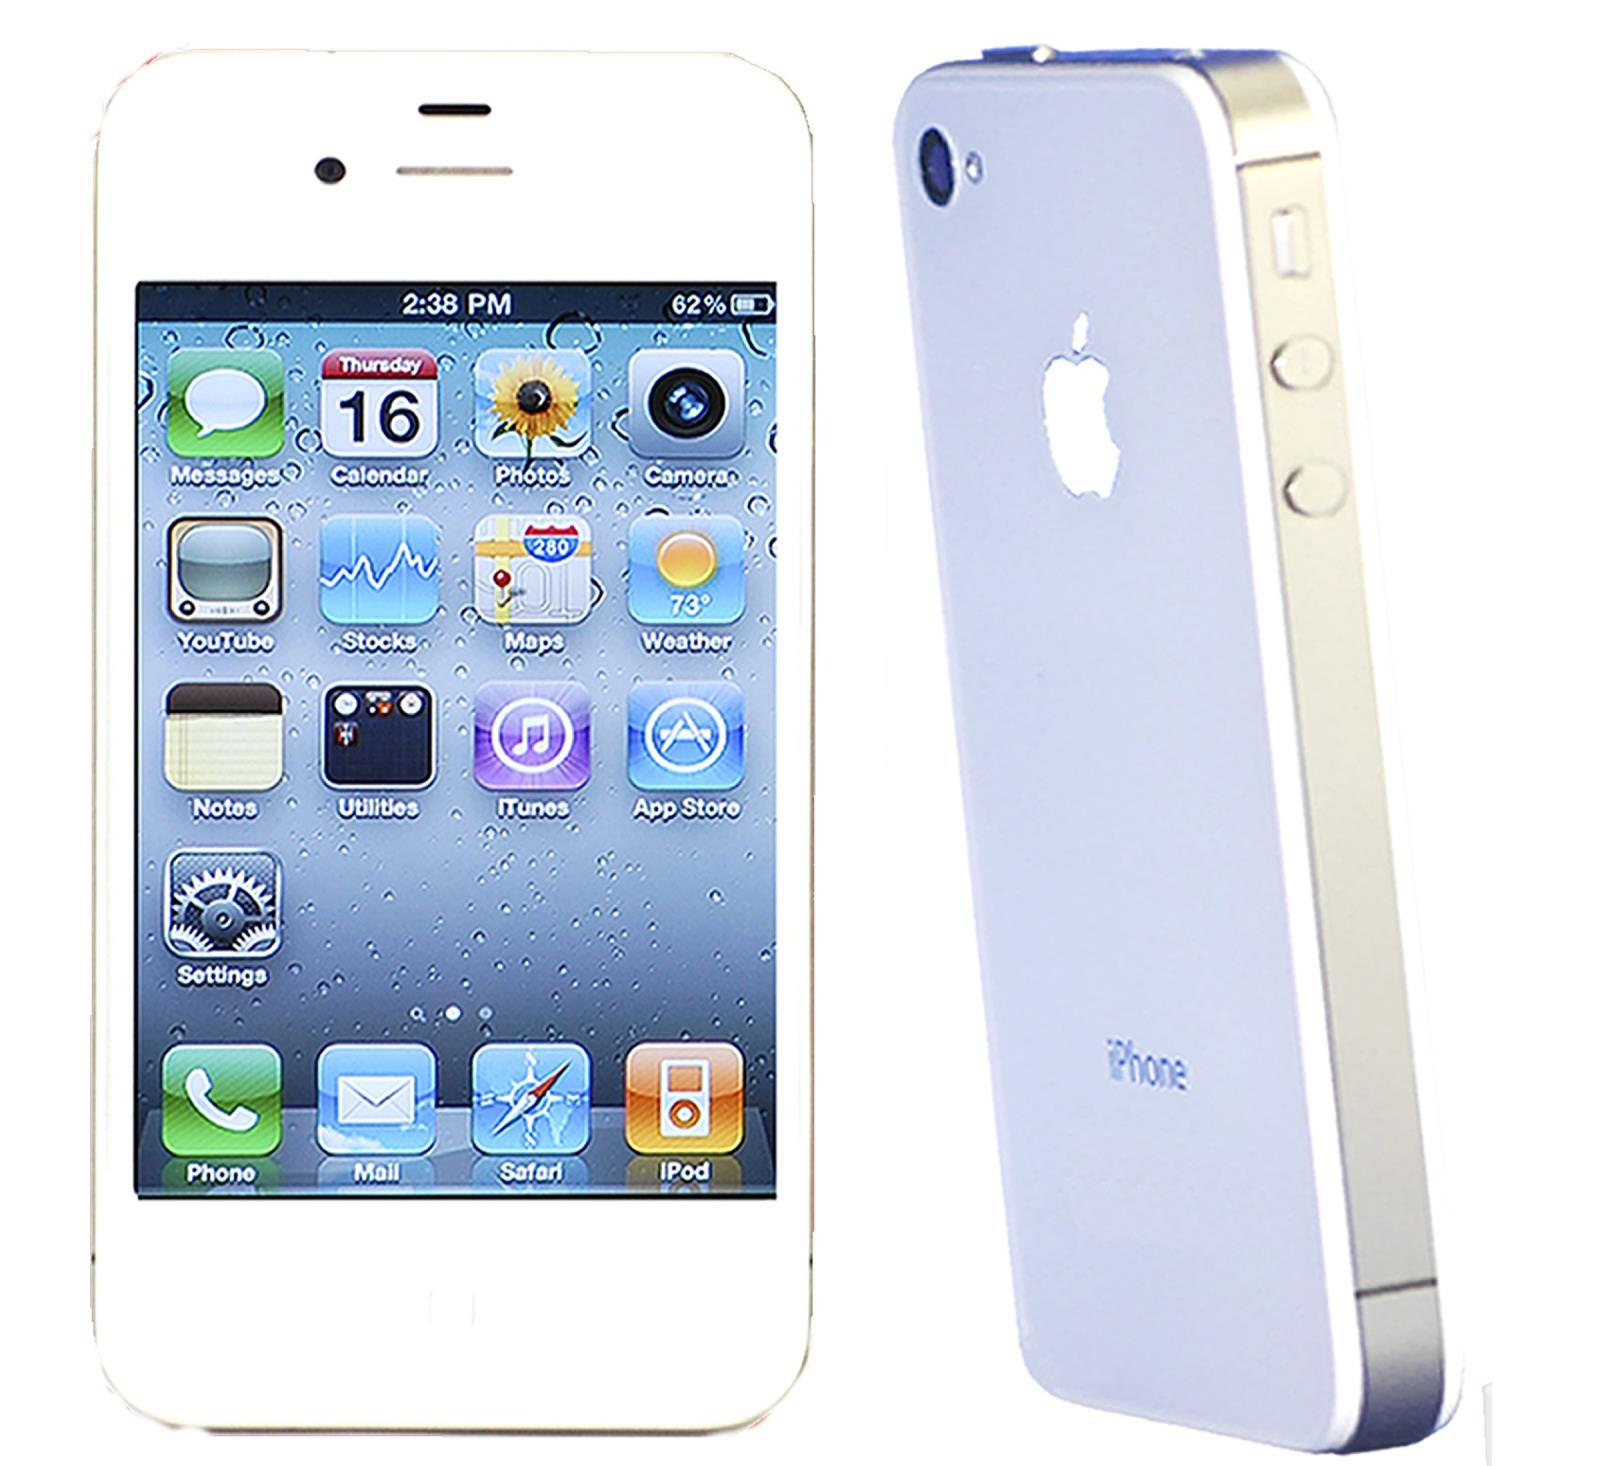 iphone 4s no contract quot apple iphone 4s white 8gb sprint smartphone quot 14438